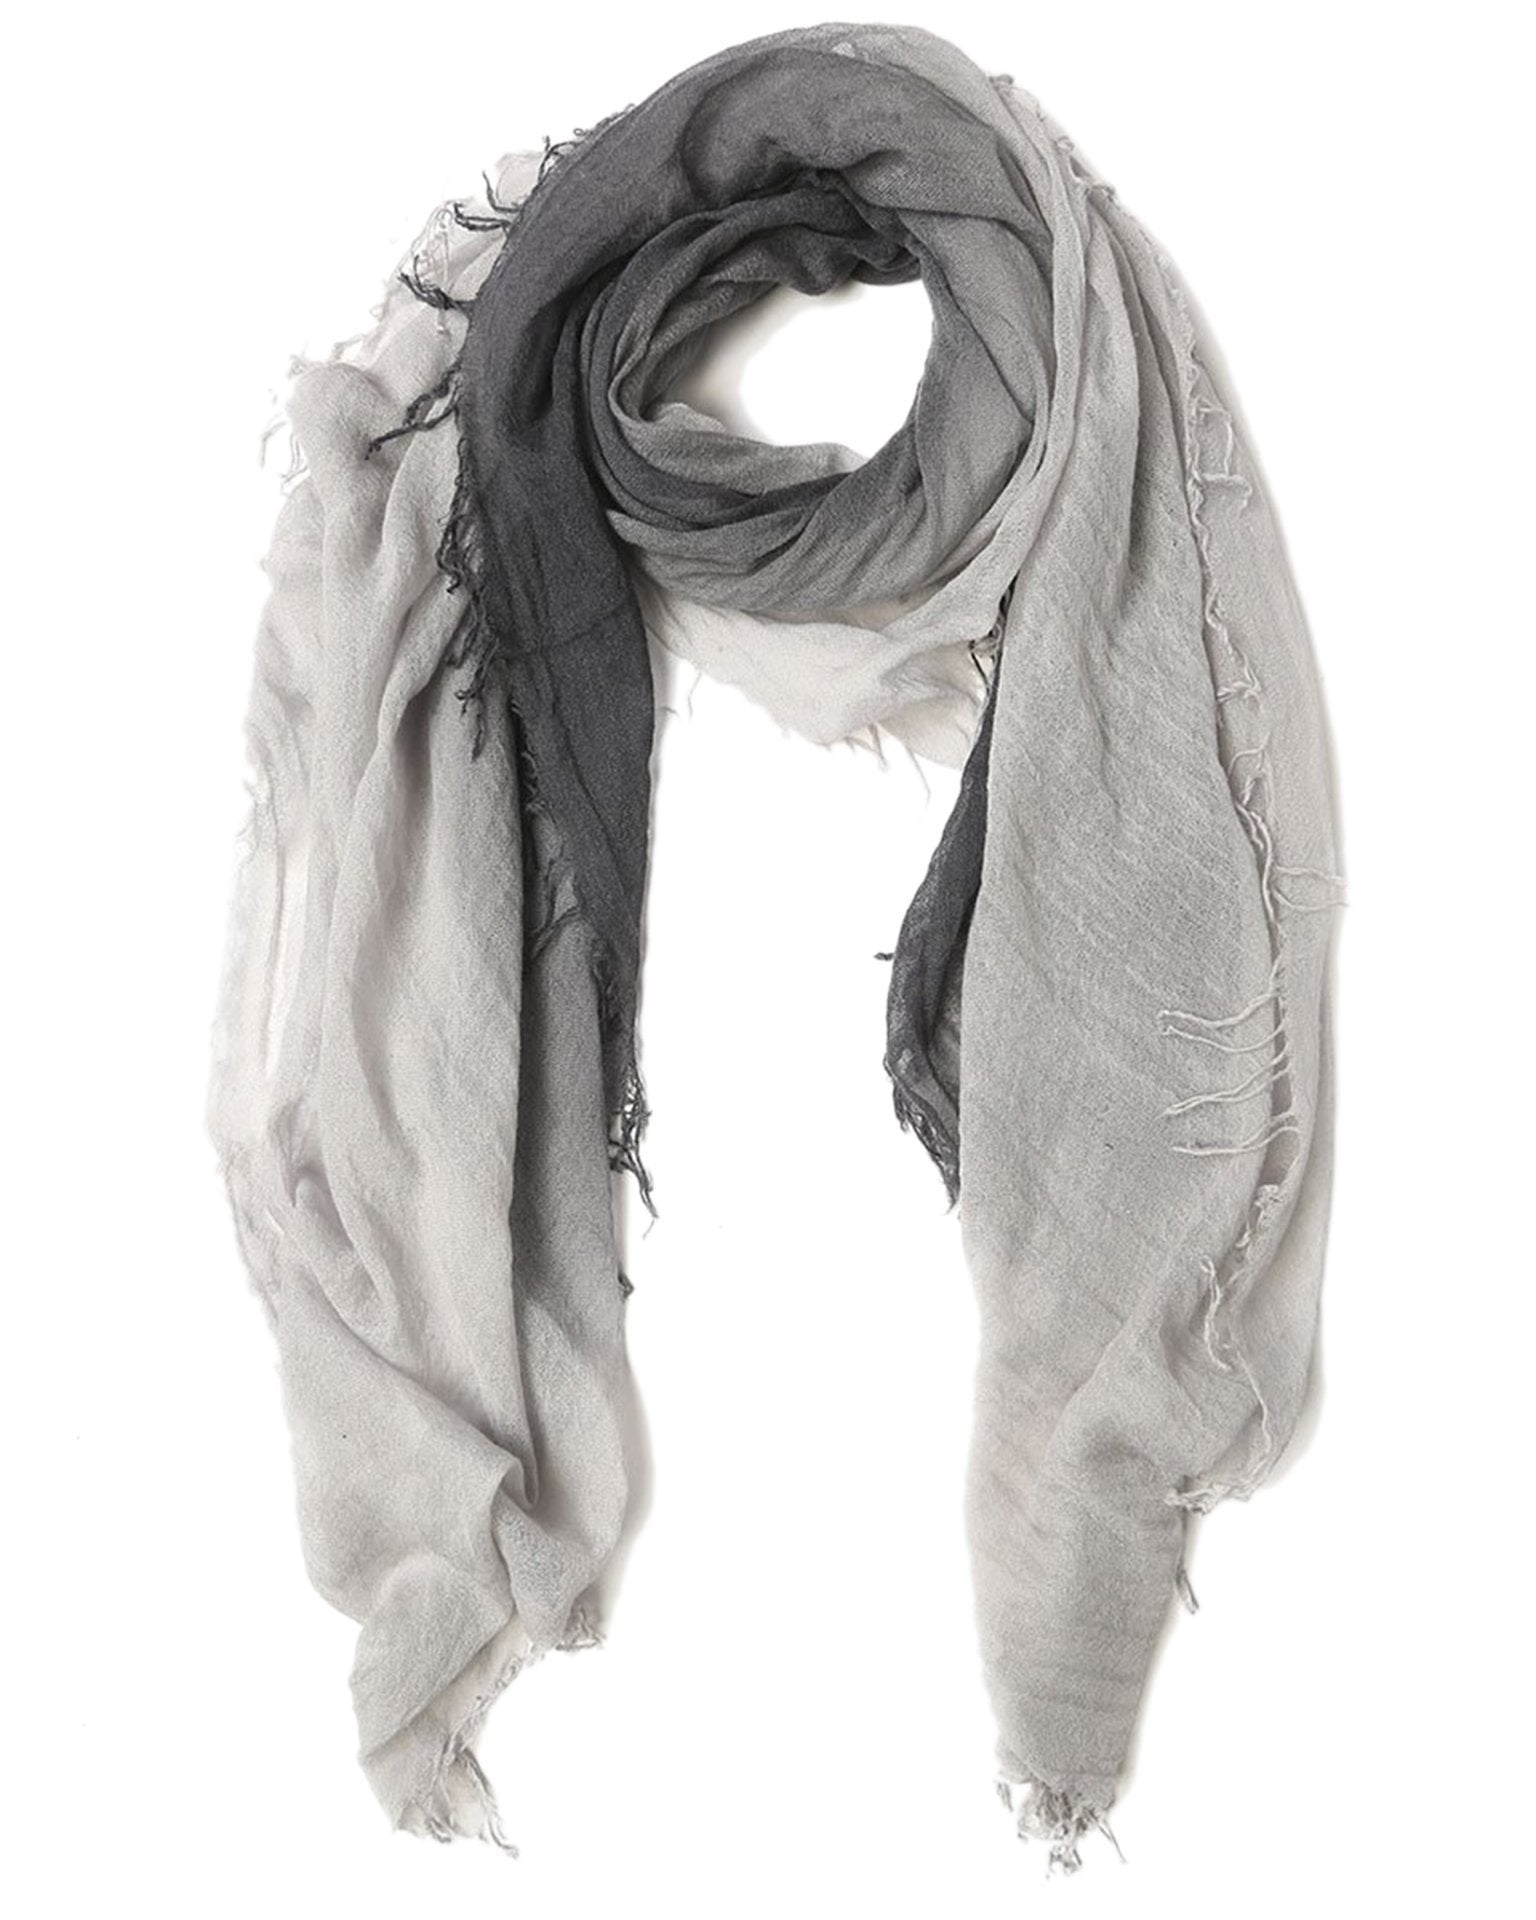 Chan Luu Accessories Ebony/Harbor Mist / O/S C/S Shadow Dye Scarf